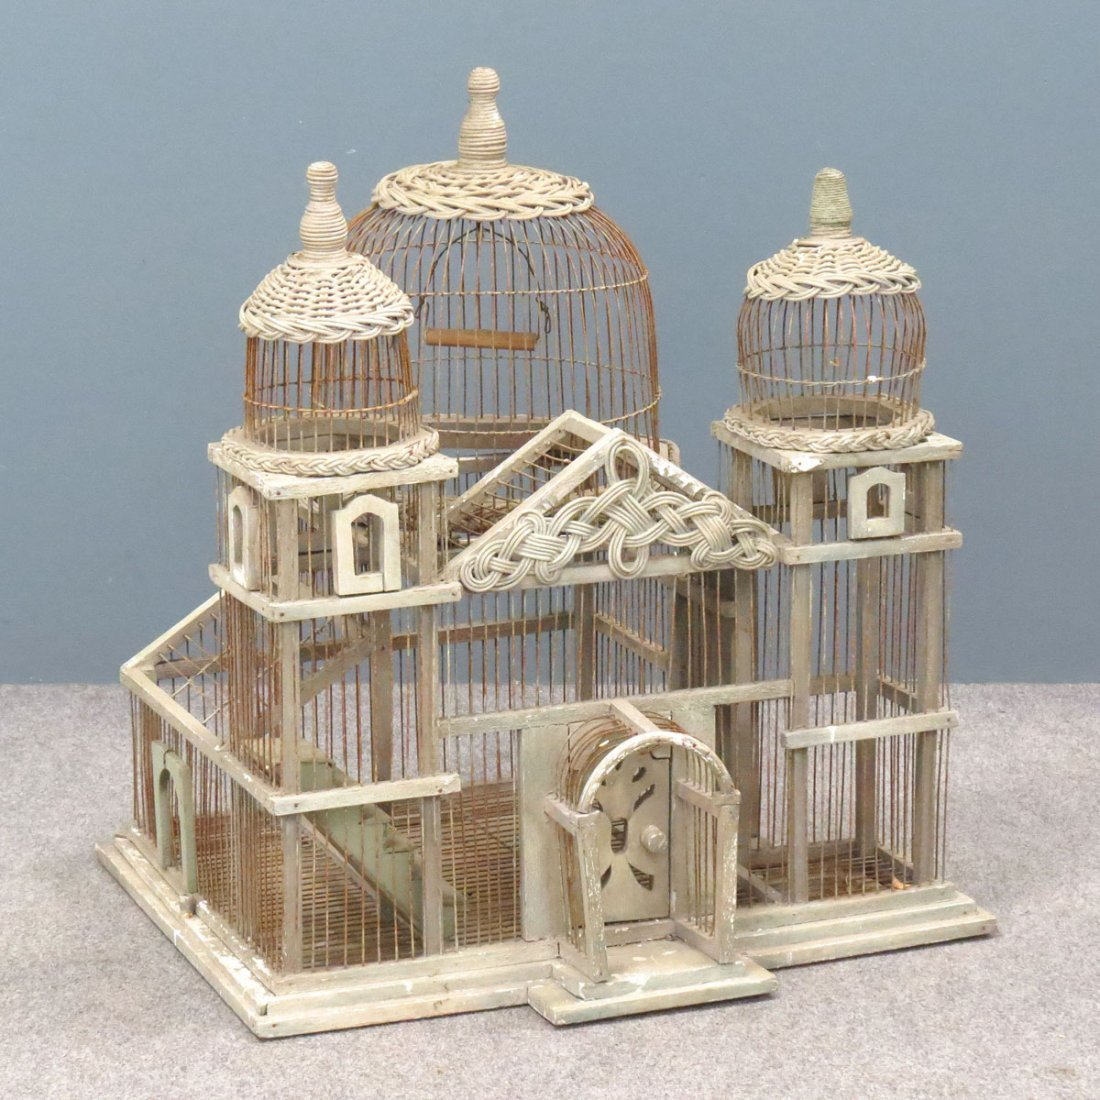 VINTAGE WOOD/WIRE AND WICKER BIRD CAGE